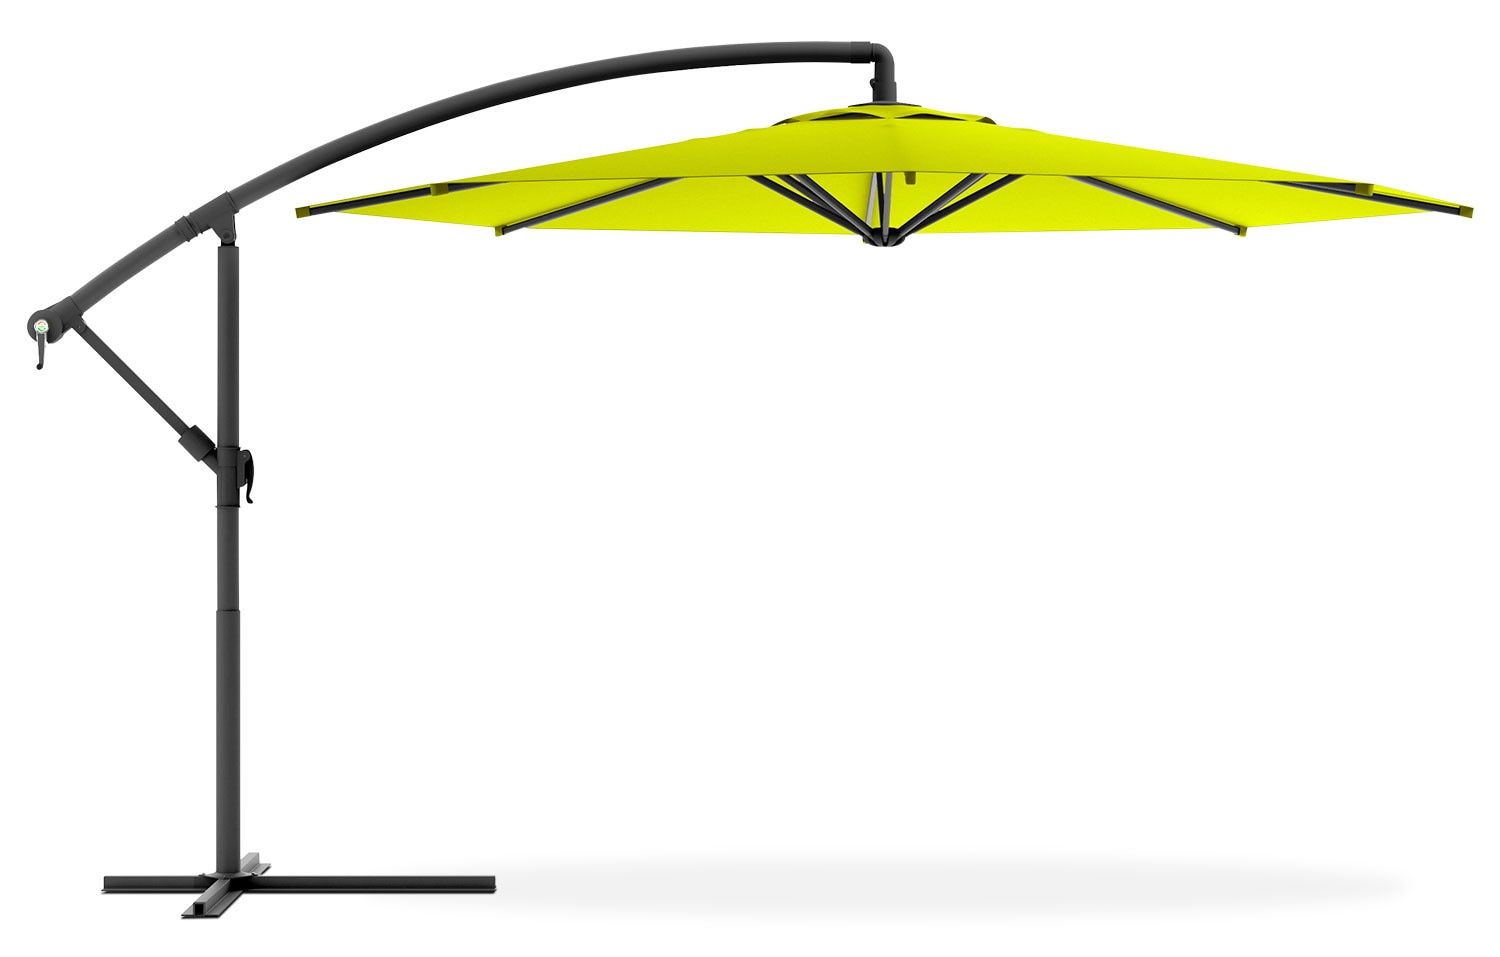 Cantilevered Patio Umbrella – Lime Green